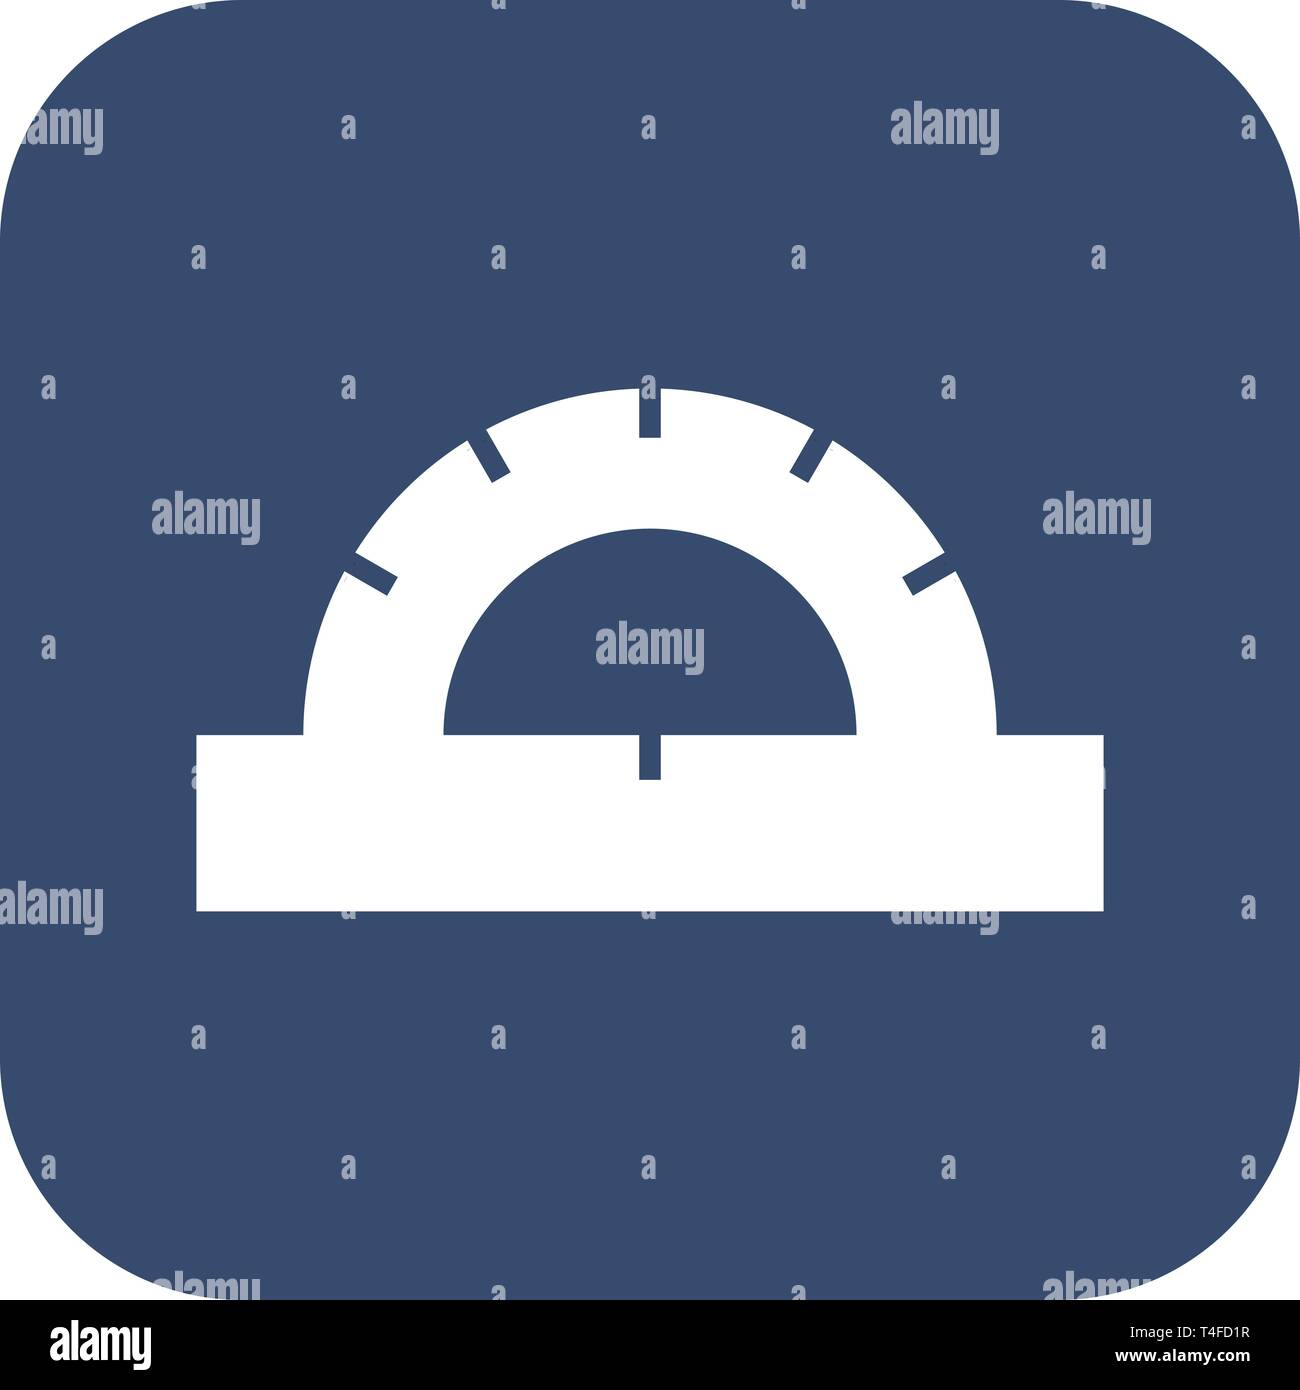 Protractor icon in flat style isolated on dark background. For your design, logo. Stock Vector